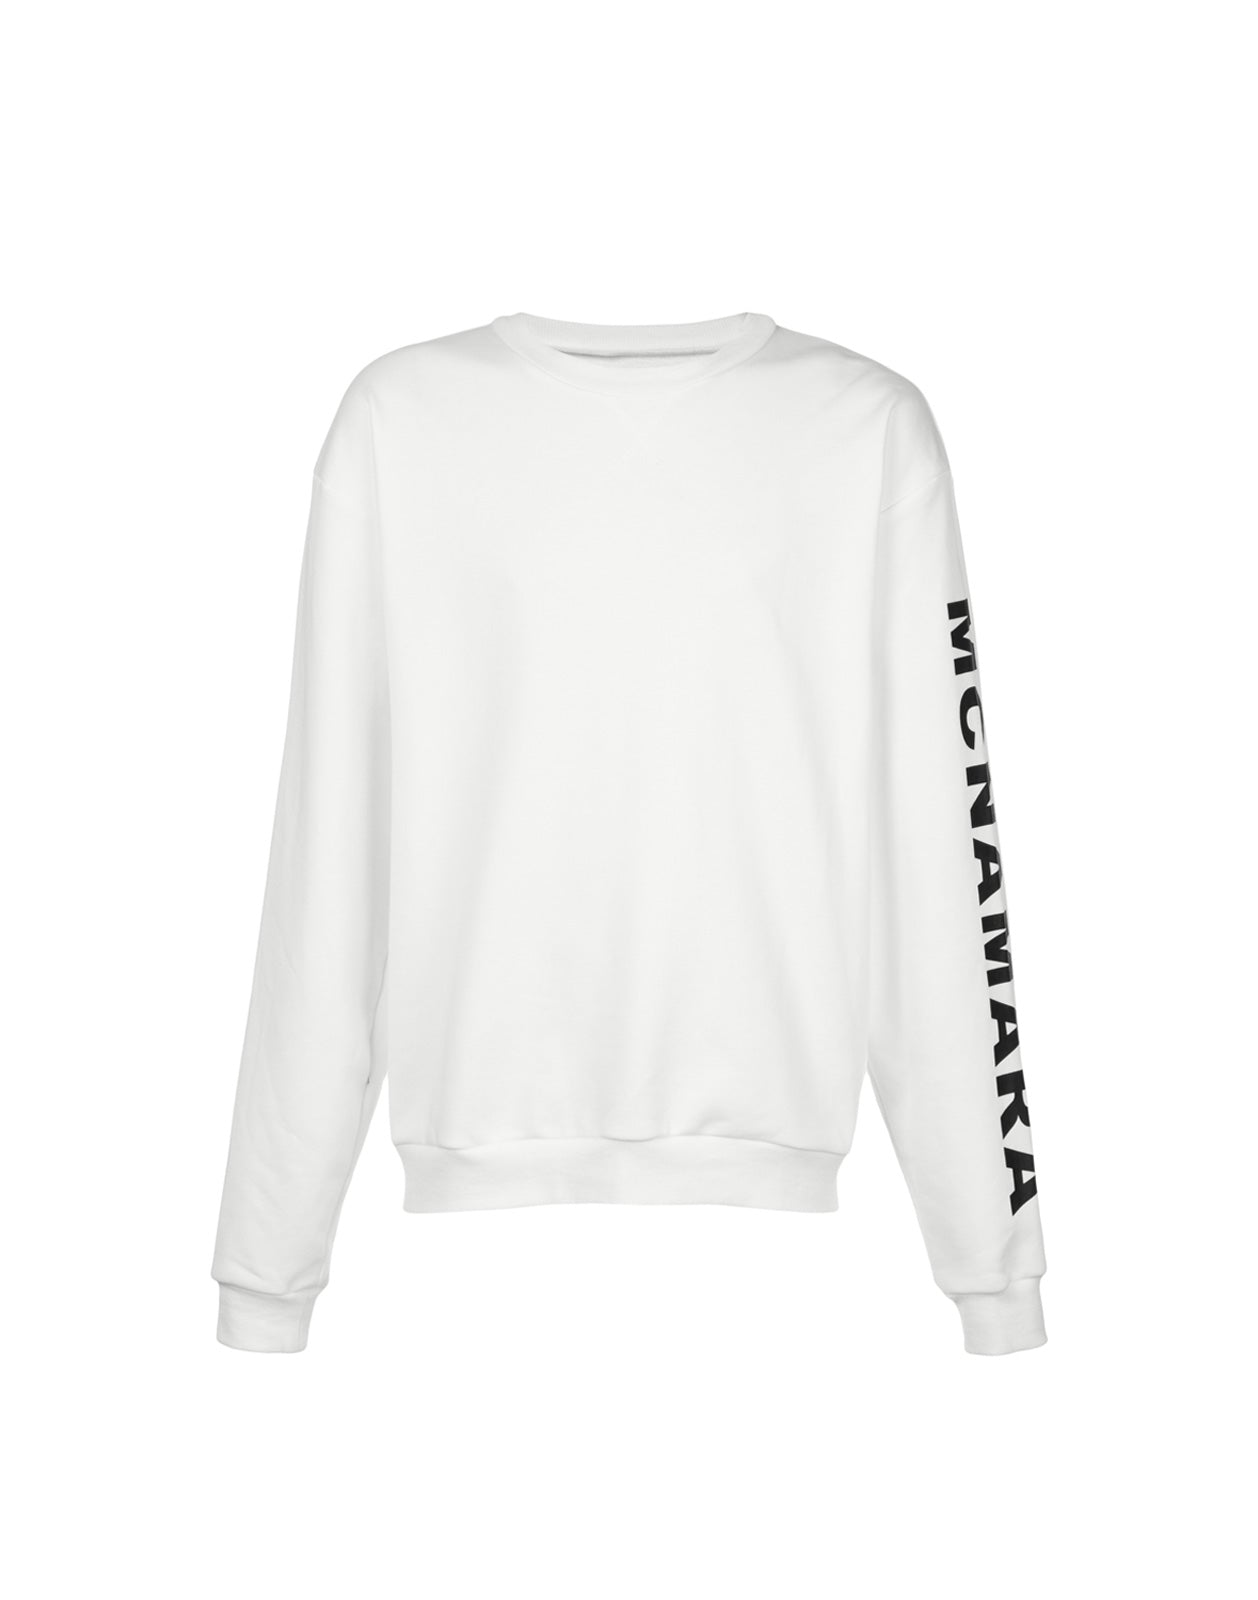 Product image of solid crewneck sweatshirt with McNamara printed down one sleeve.